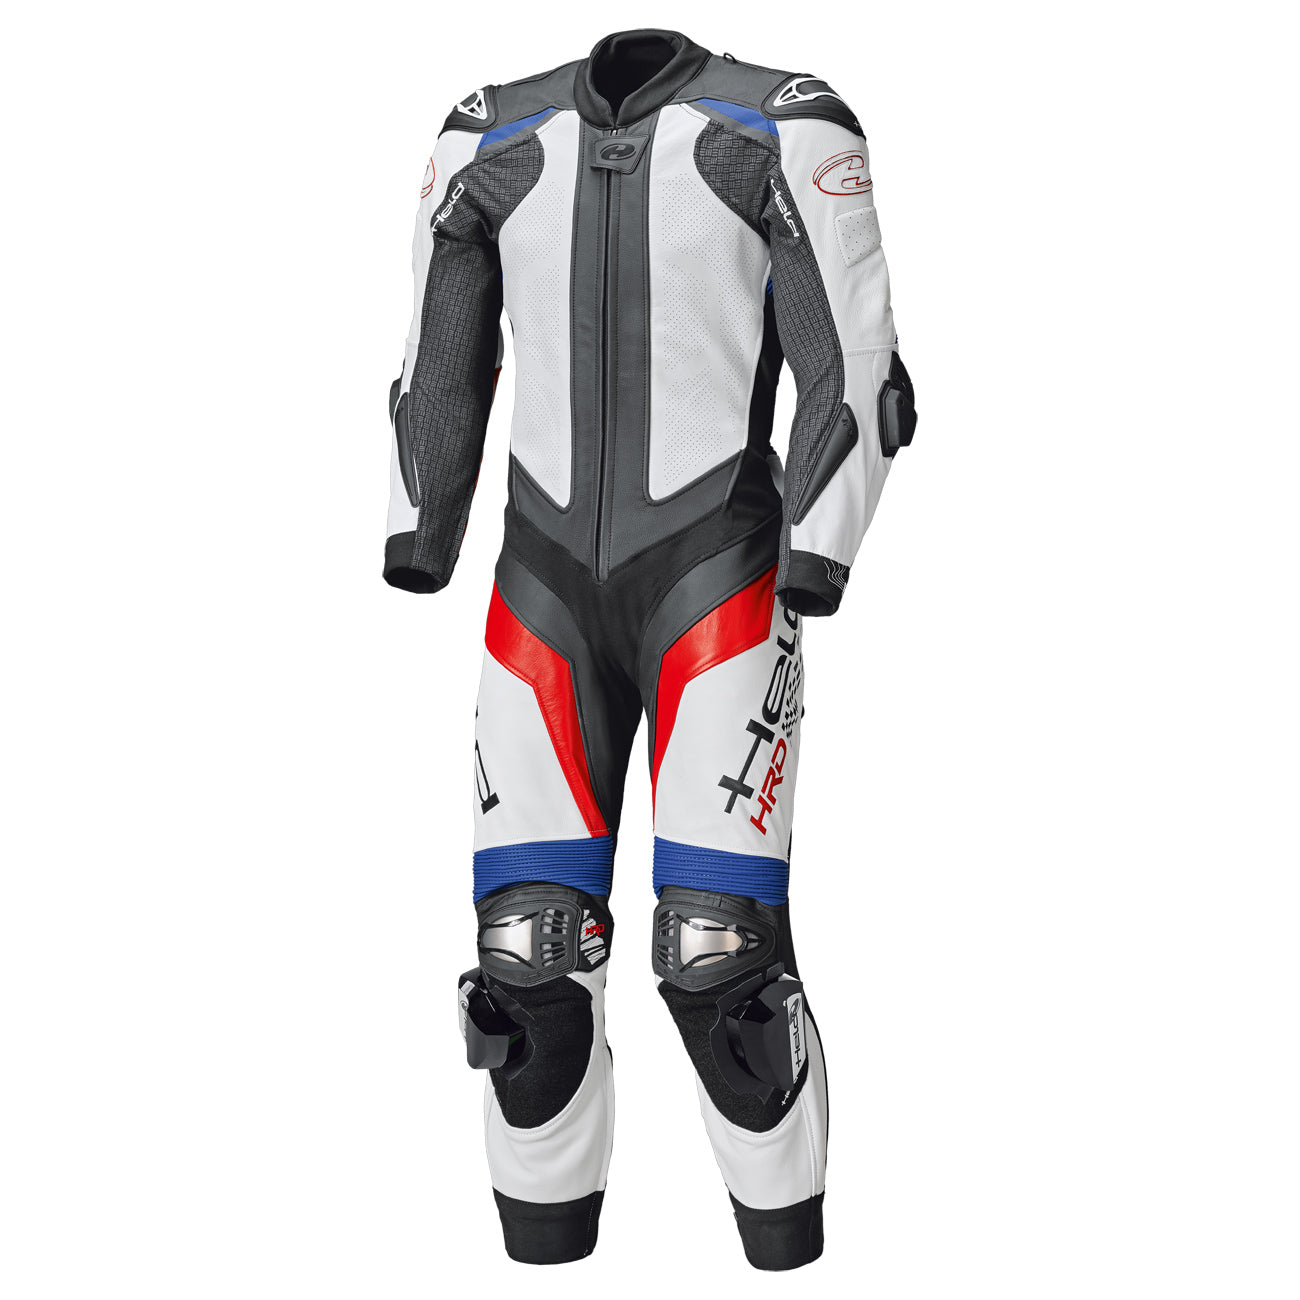 Race-Evo II, 1 Pc Leather Suit, Held - Averys Motorcycles